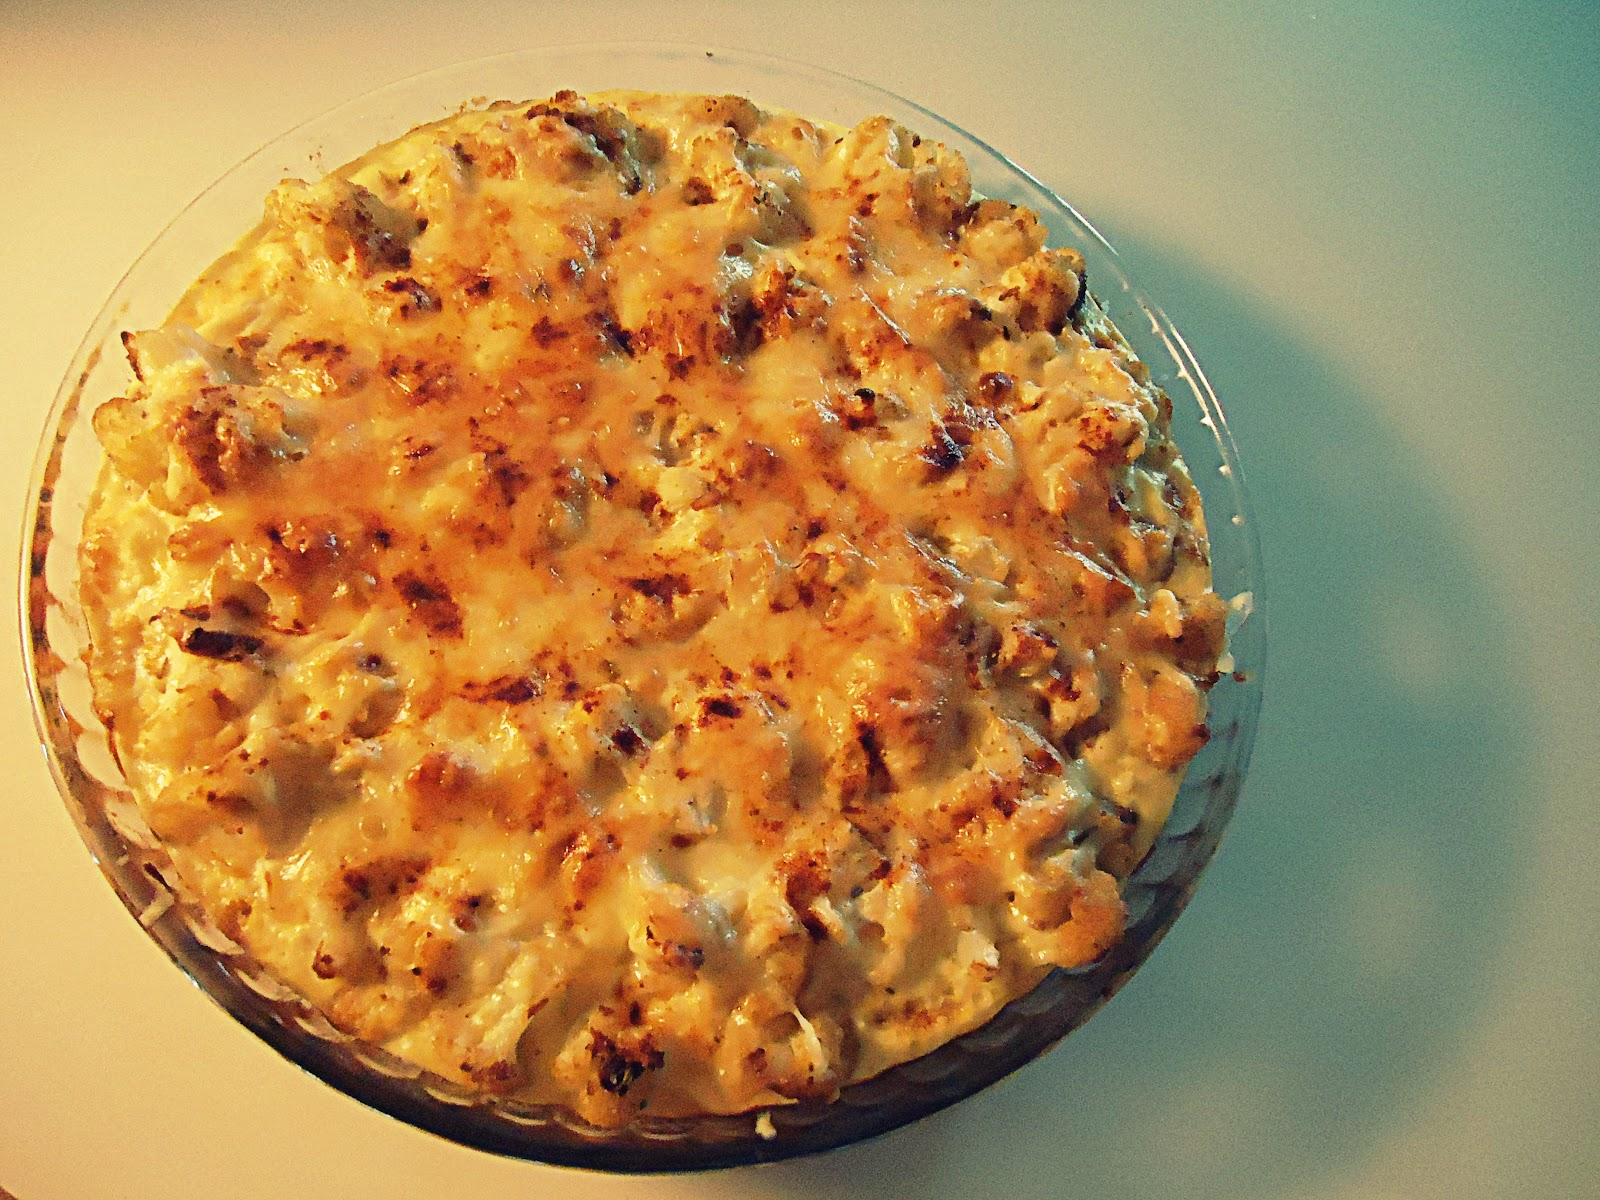 thedirtyovenmitten: Cauliflower Cheese Pie